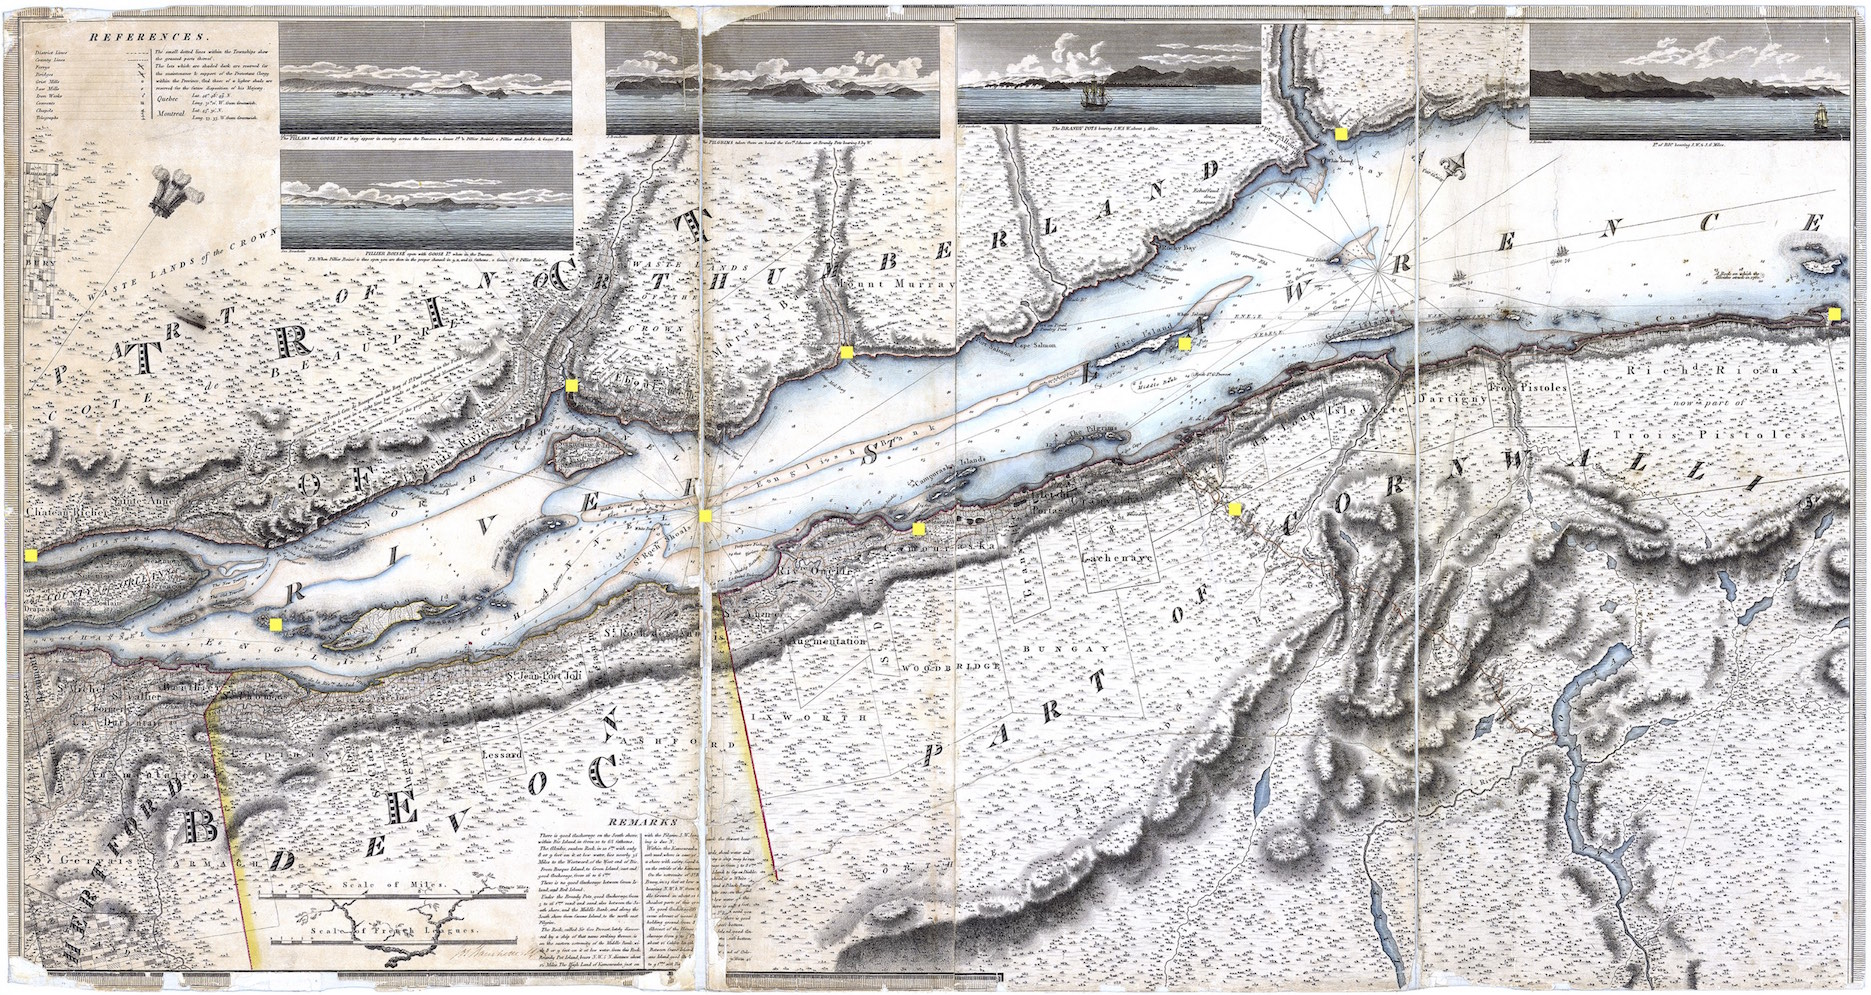 Une vieille carte du golfe du Saint-Laurent.